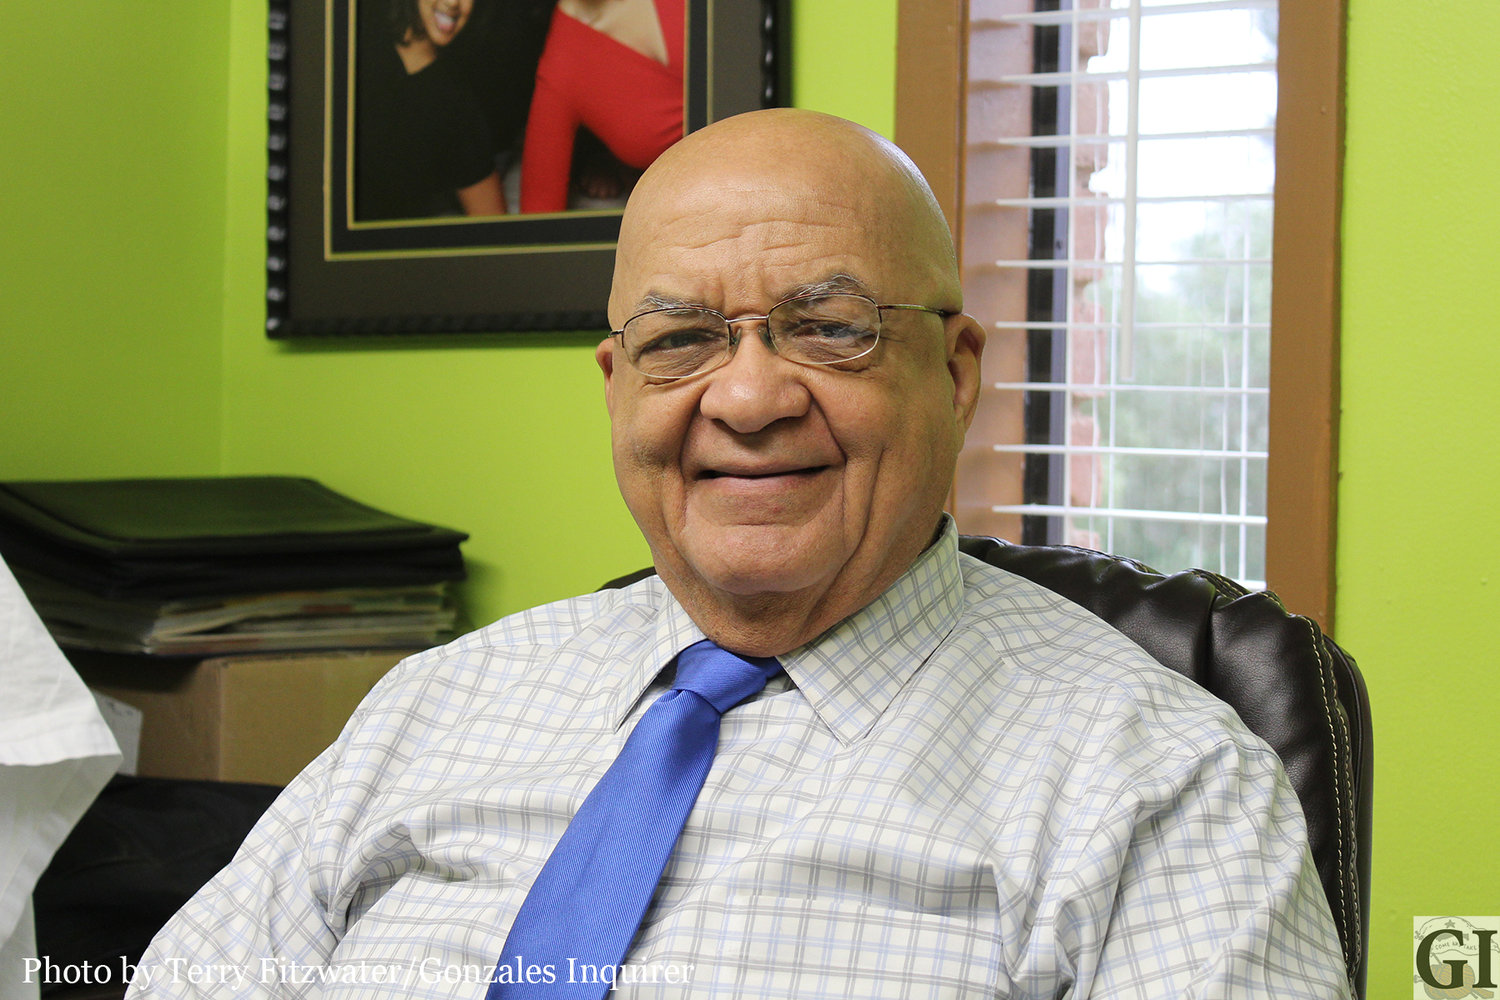 Dr. Garth Vaz (pictured) operates an Urgent Care facility that opened back in November, to provide the community of Gonzales less expensive options at health care.